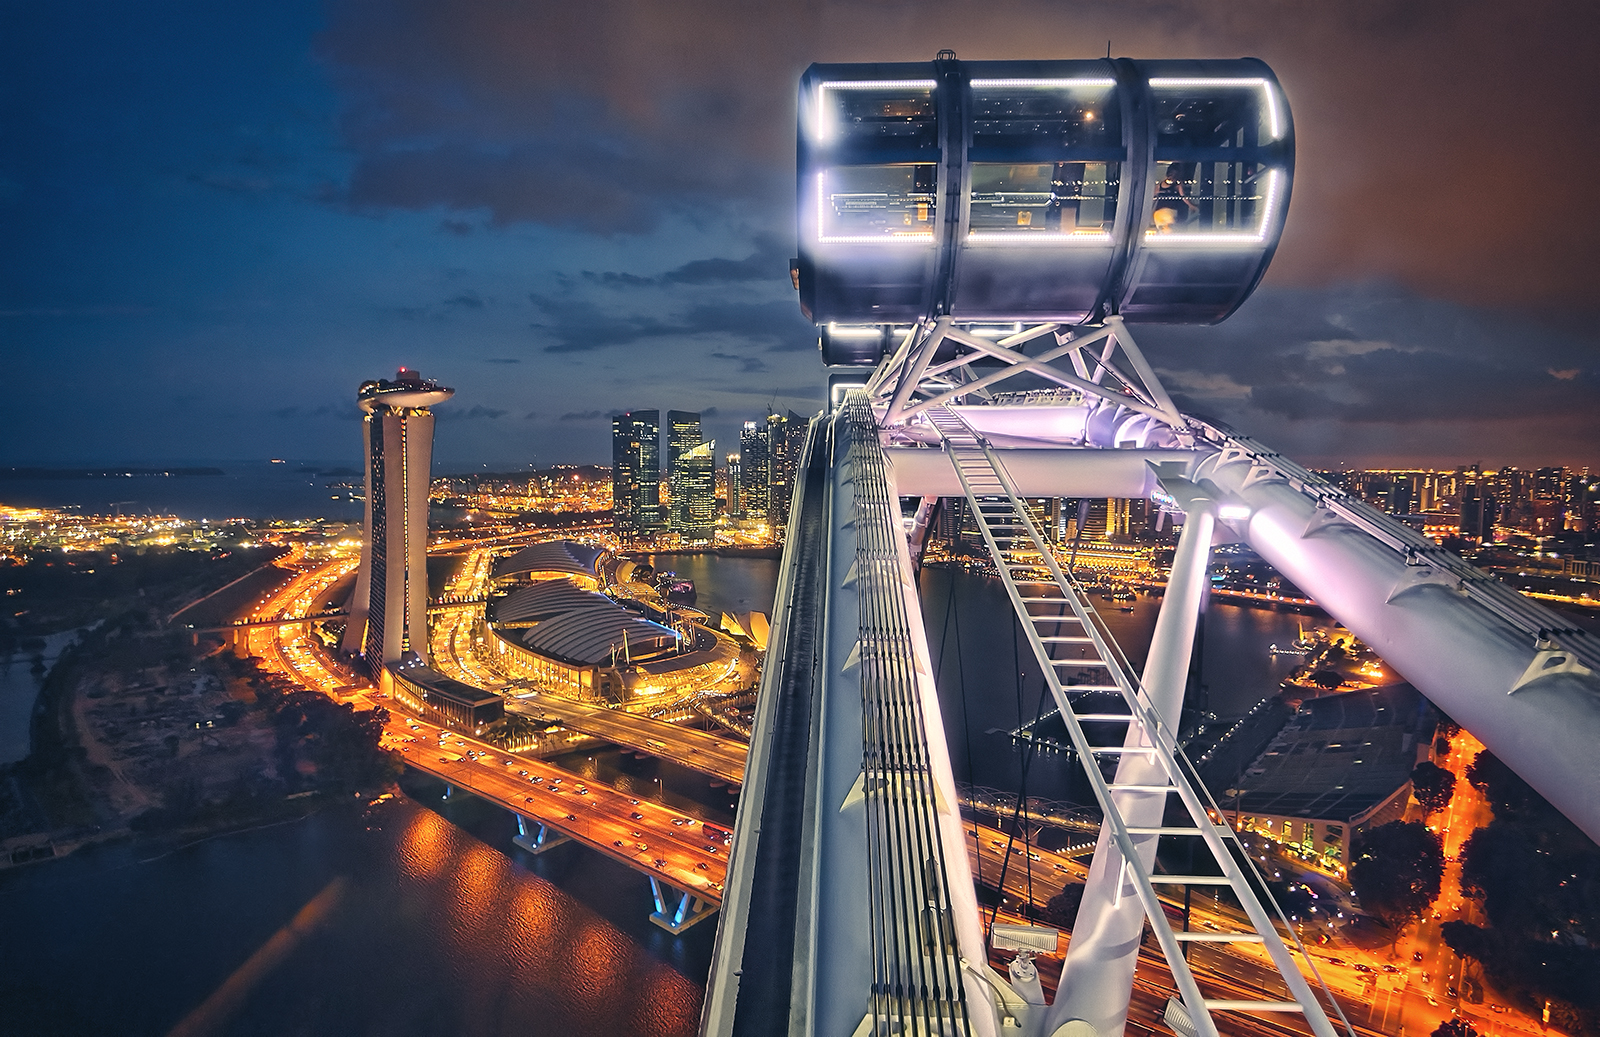 Capsule of the Singapore Flyer